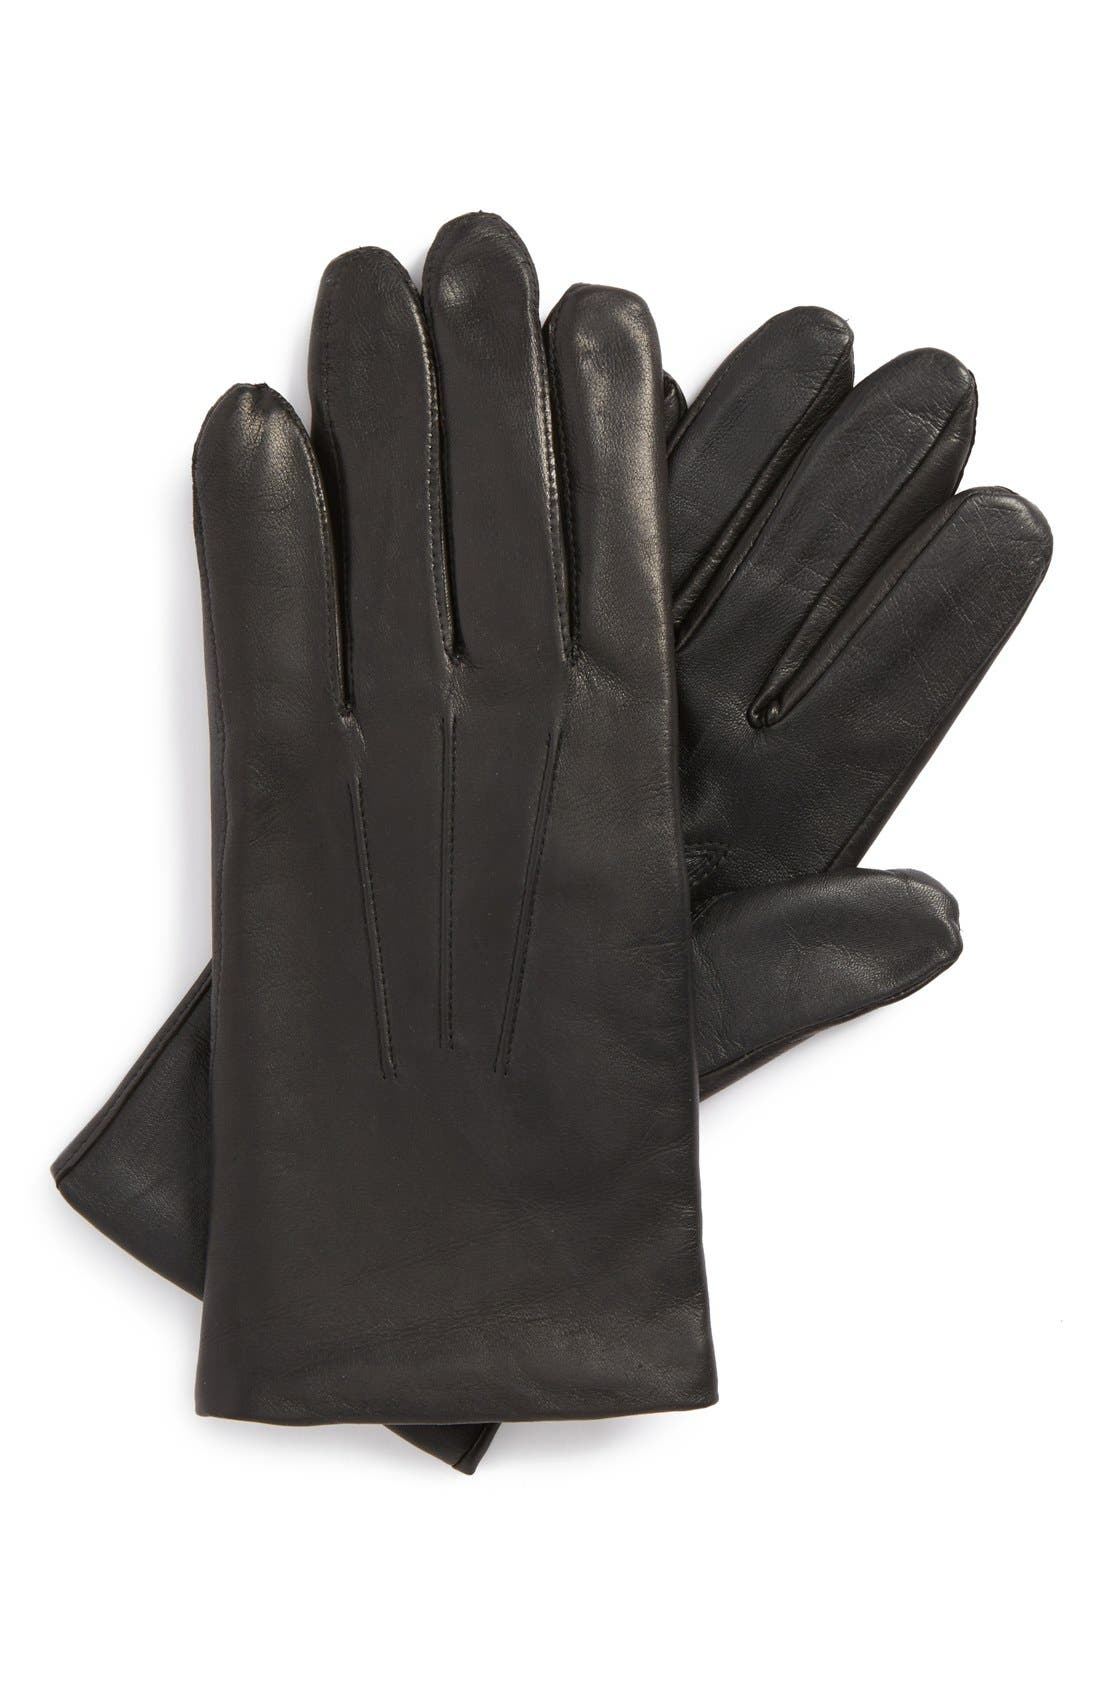 Alternate Image 1 Selected - John W. Nordstrom® Leather Tech Gloves